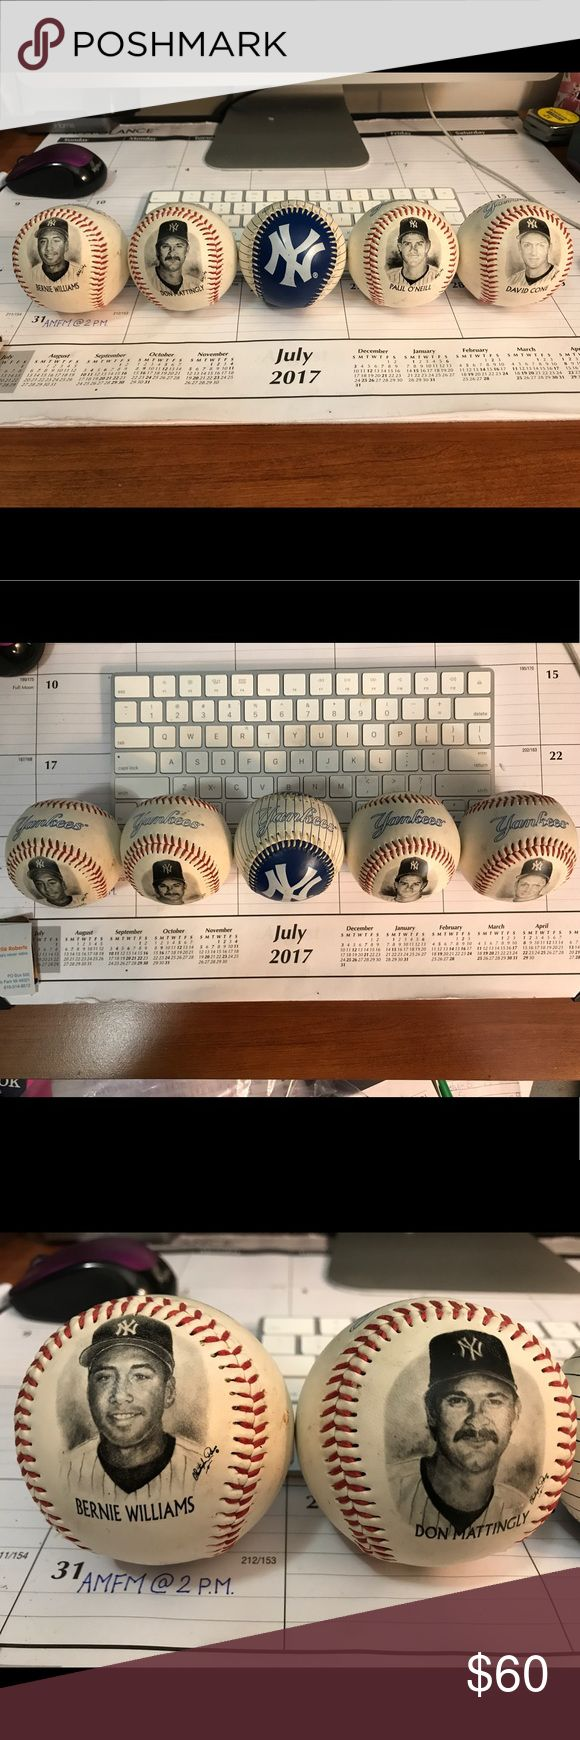 1996 Yankees Burger King Promo Photoball Set this Burger King promo from 1996 is a collection of 5 baseballs with 4 yankees players.  The one ball is white and blue with a large yankees logo on it and the other 4 balls have yankees players Bernie Williams, Don Mattingly, Paul O'Neil, and David Cone.  On the other side of each ball has a biography, stats, and/or important information about each player.  I have the whole set and they are all in excellent condition! Fotoball Other